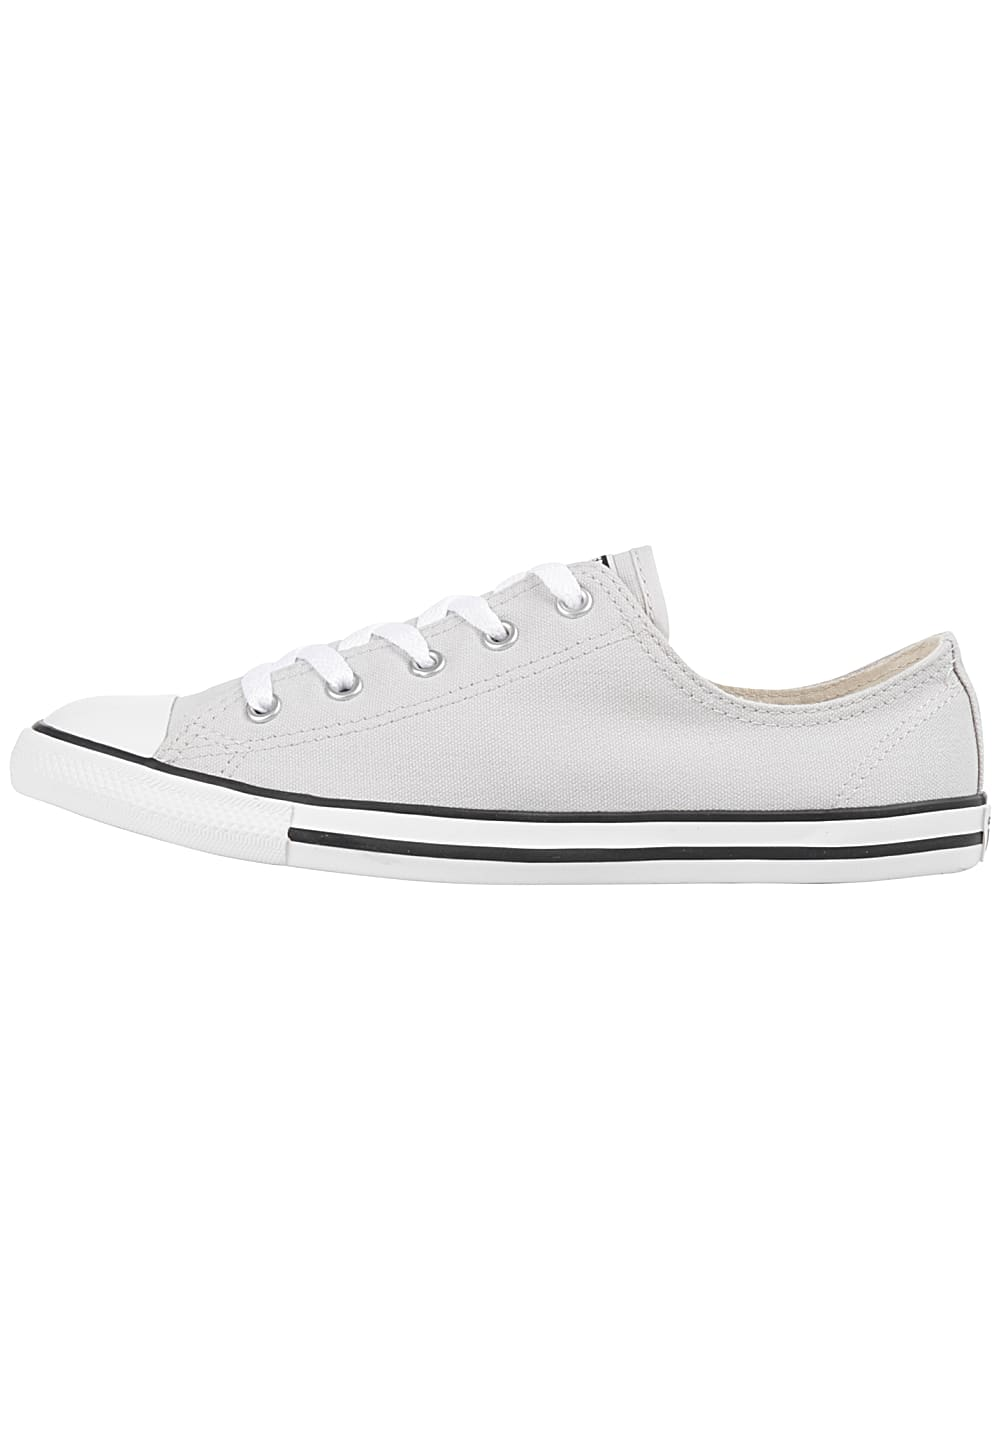 converse all star dainty hombre